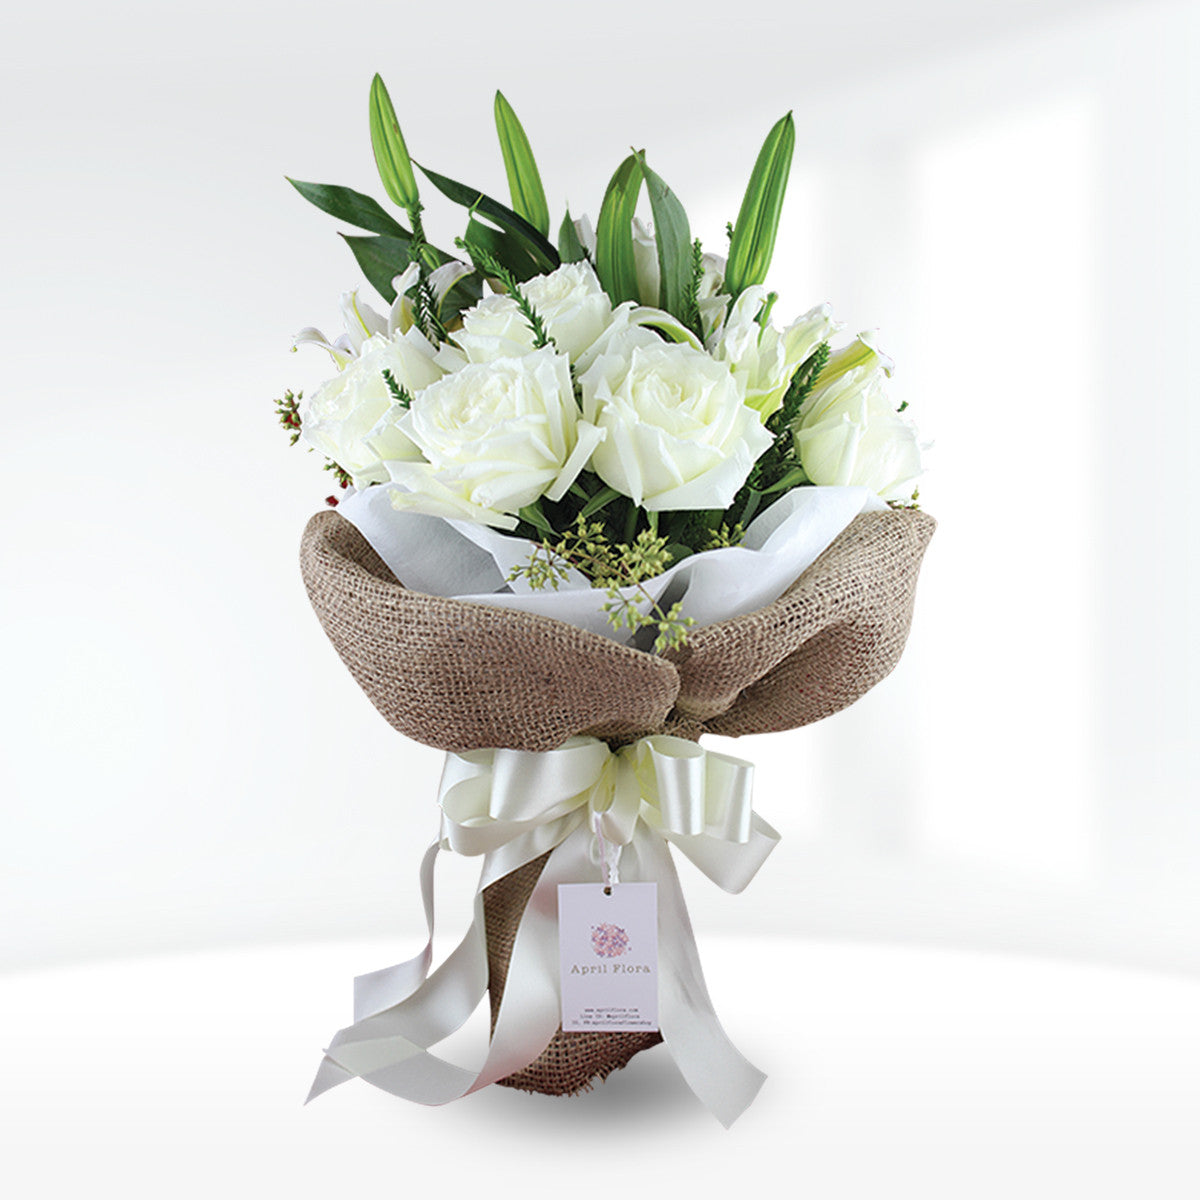 Cute Bouquet Of White Roses And Lilies - April Flora